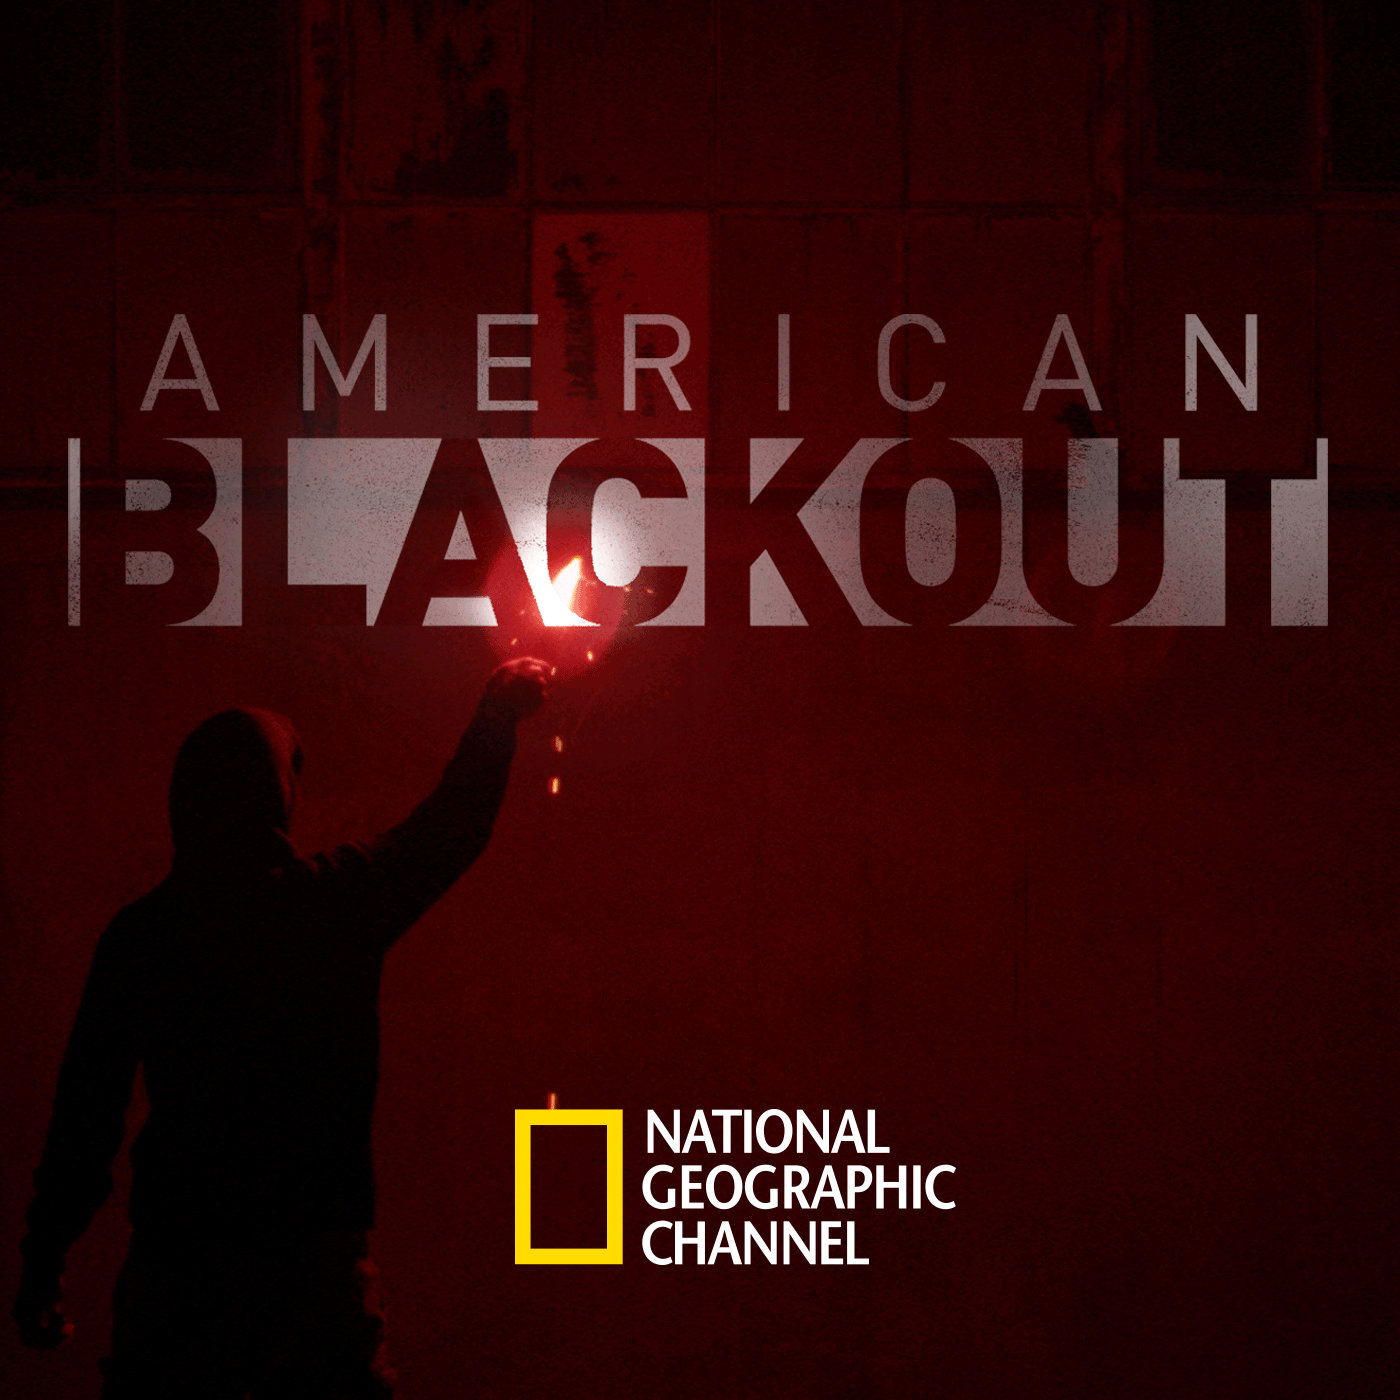 american blackout American blackout (2006) is a documentary film directed by ian inabait premiered at the 2006 sundance film festivalthe film chronicles the 2002 defeat, and 2004 reelection, of congresswoman cynthia mckinney to the us house of representatives it also discusses issues surrounding alleged voter disenfranchisement and the use of voting.